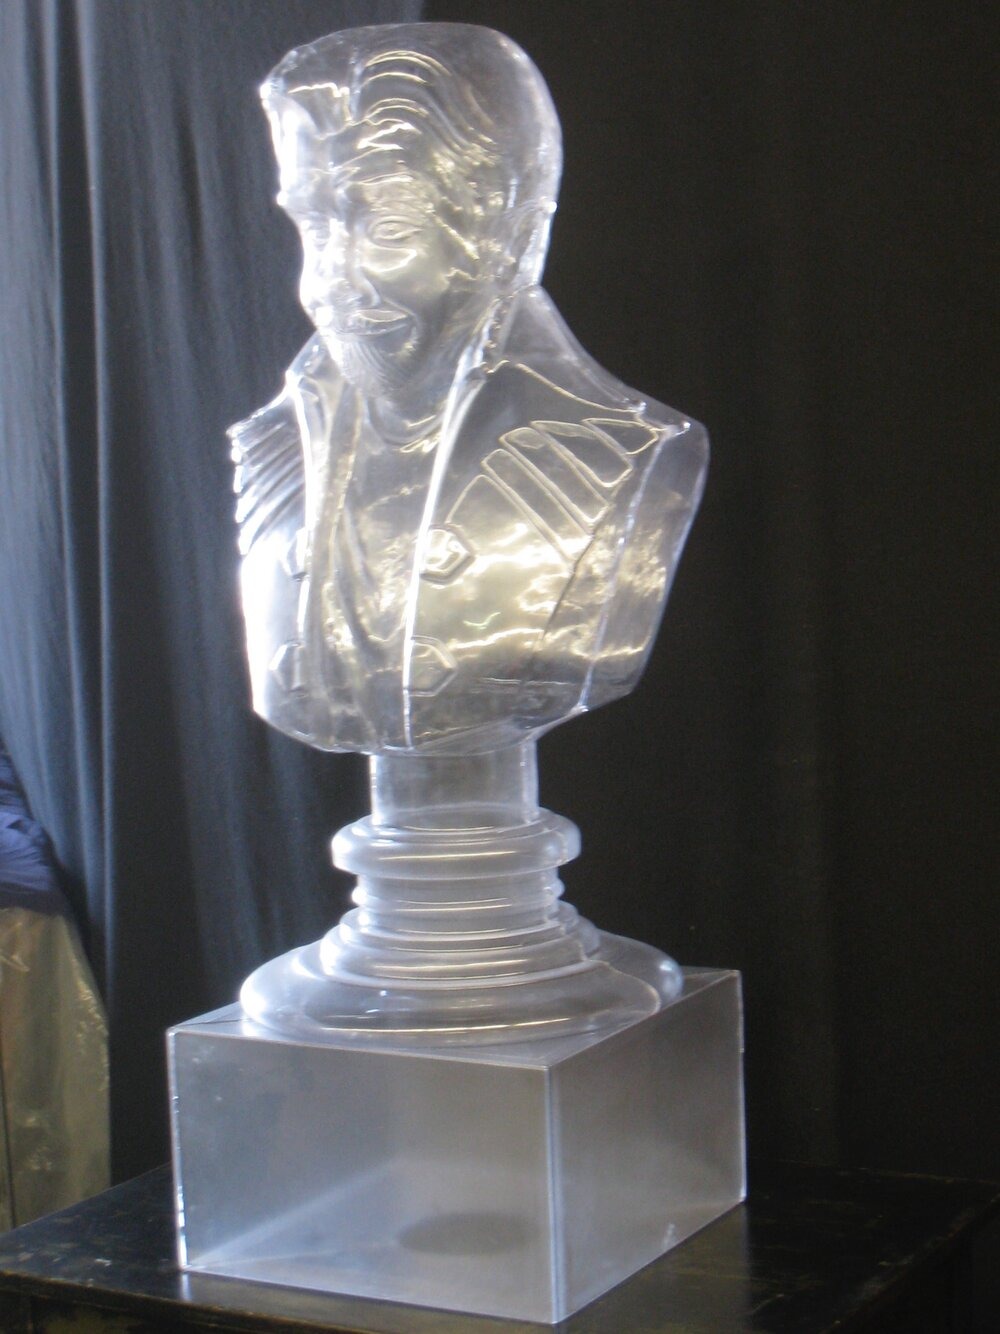 Shakespeare Ice Sculpture, Something rotten